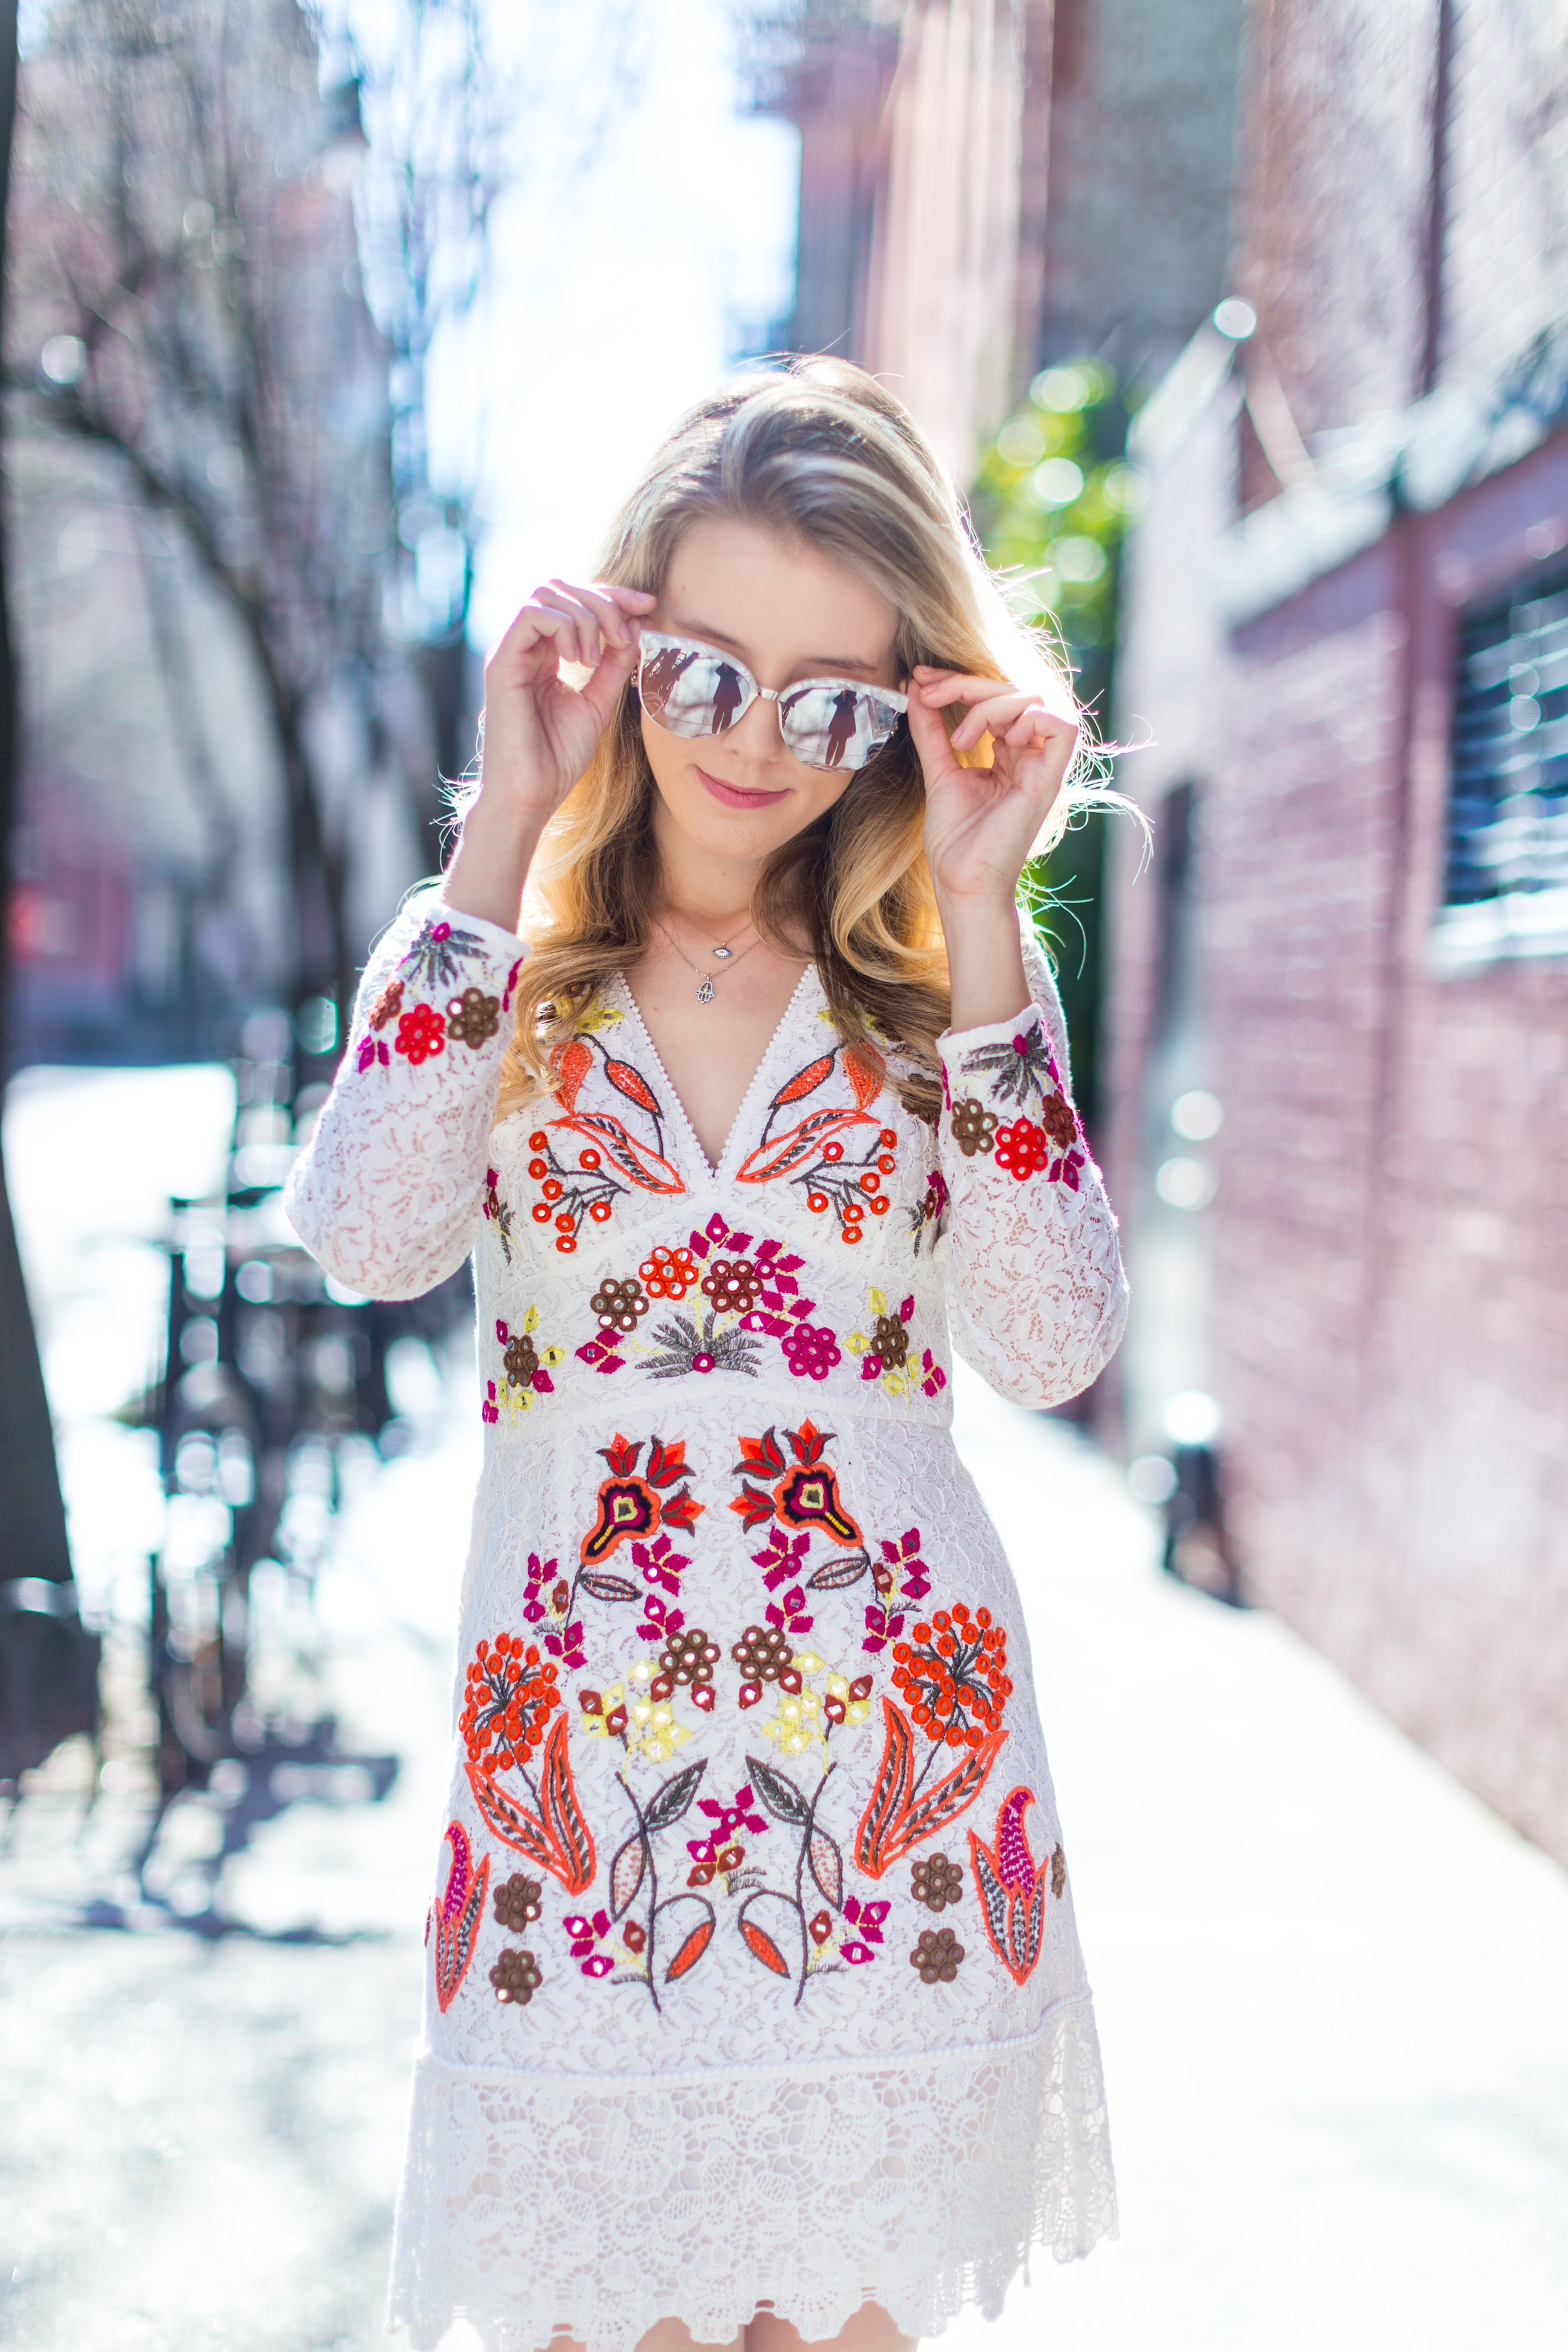 West Village NYC Embroidered Lace Outfit-13.jpg